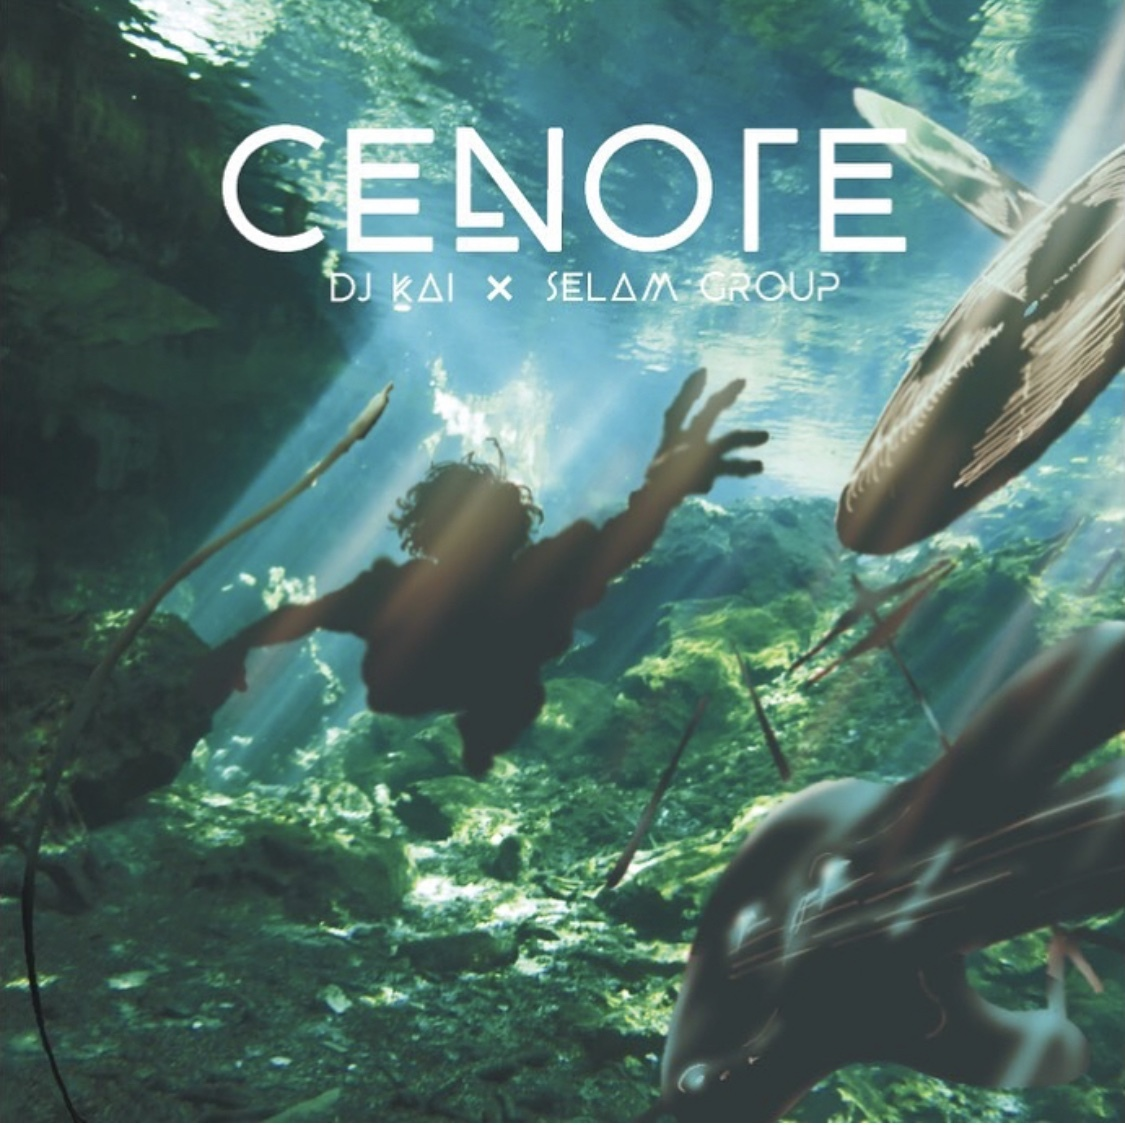 [MIX CD] DJ KAI / CENOTE